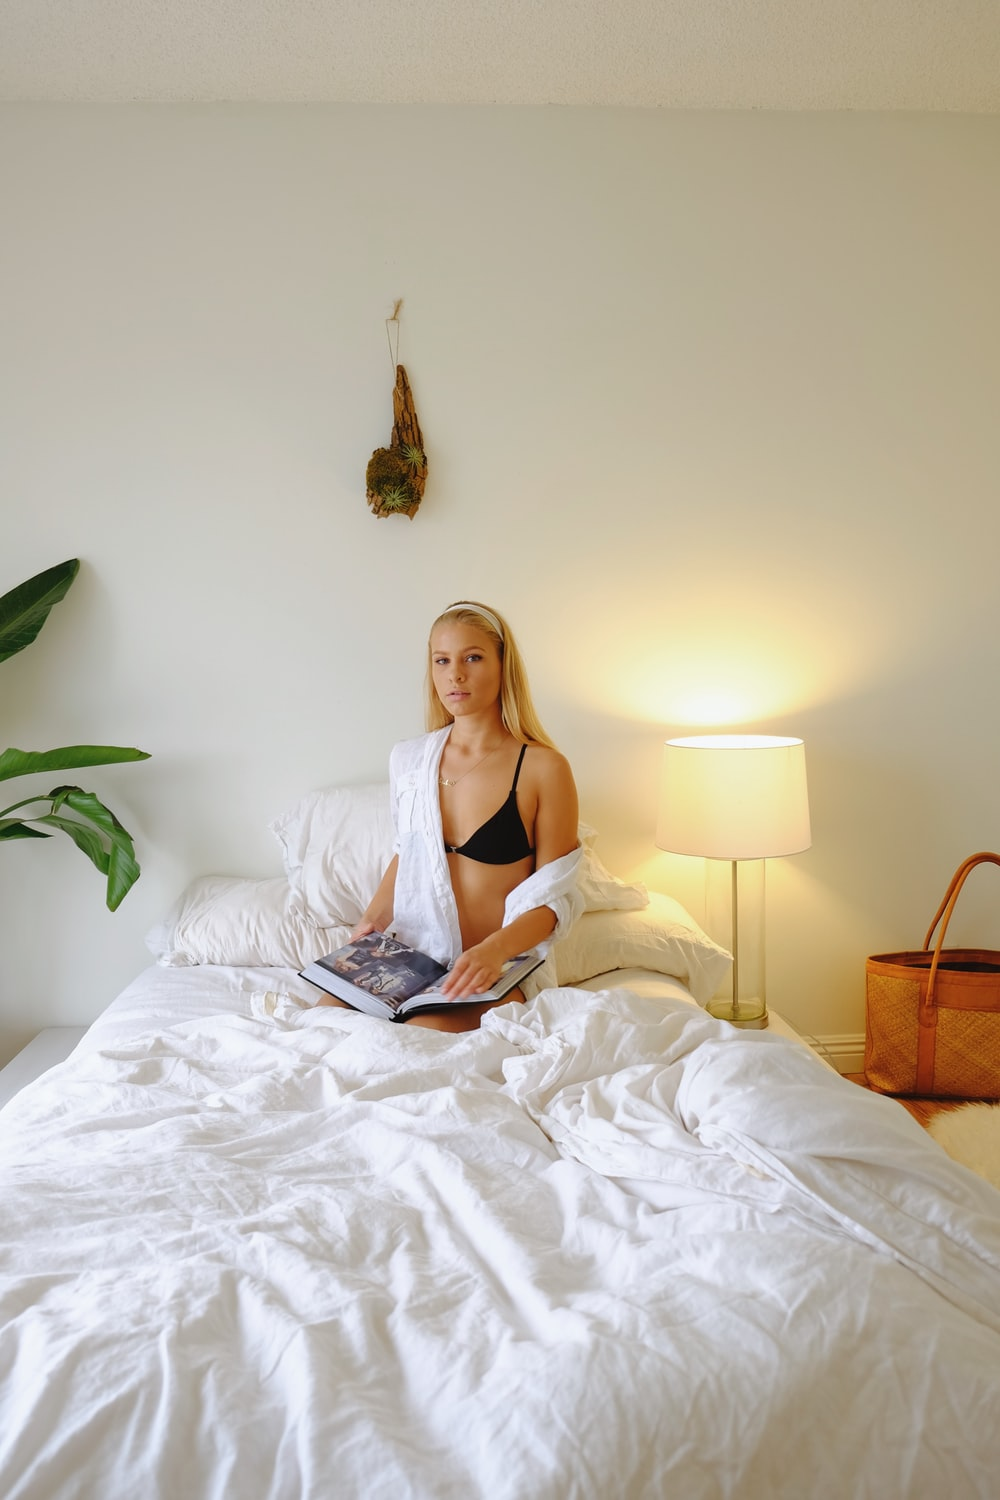 woman in white brassiere lying on bed